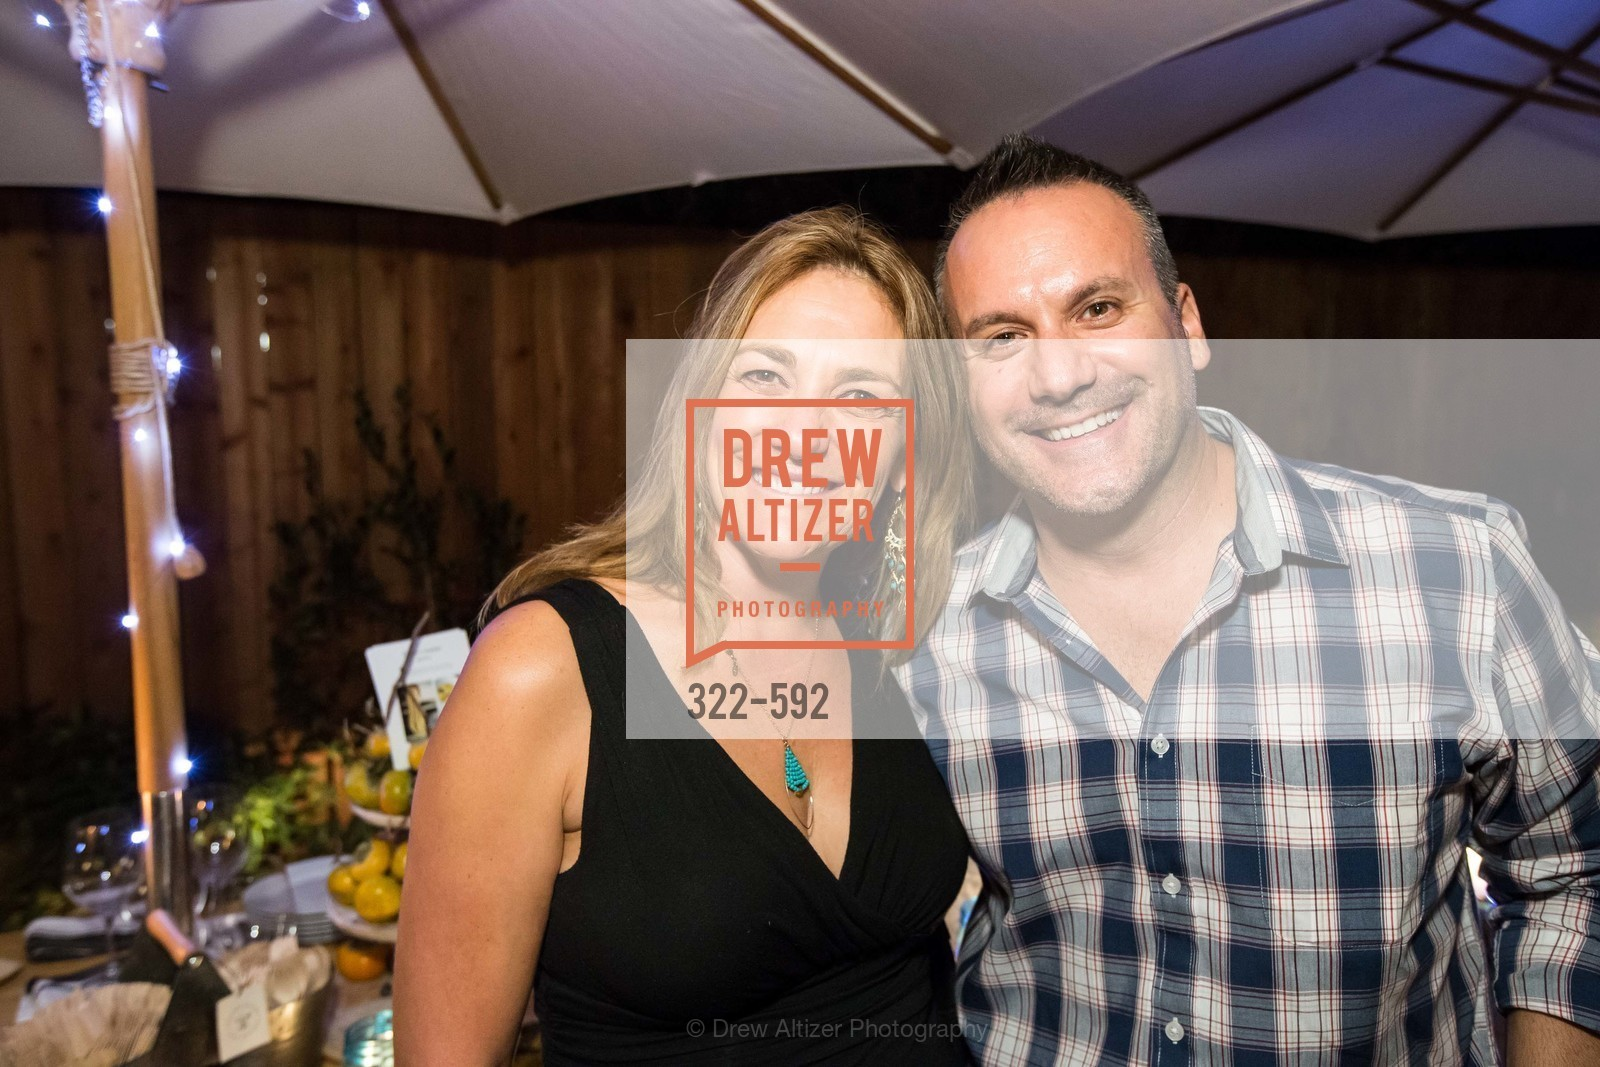 Michelle Dale, Carmine Fiore, WILLIAMS-SONOMA Cochon BBQ Celebration, US, October 2nd, 2014,Drew Altizer, Drew Altizer Photography, full-service agency, private events, San Francisco photographer, photographer california